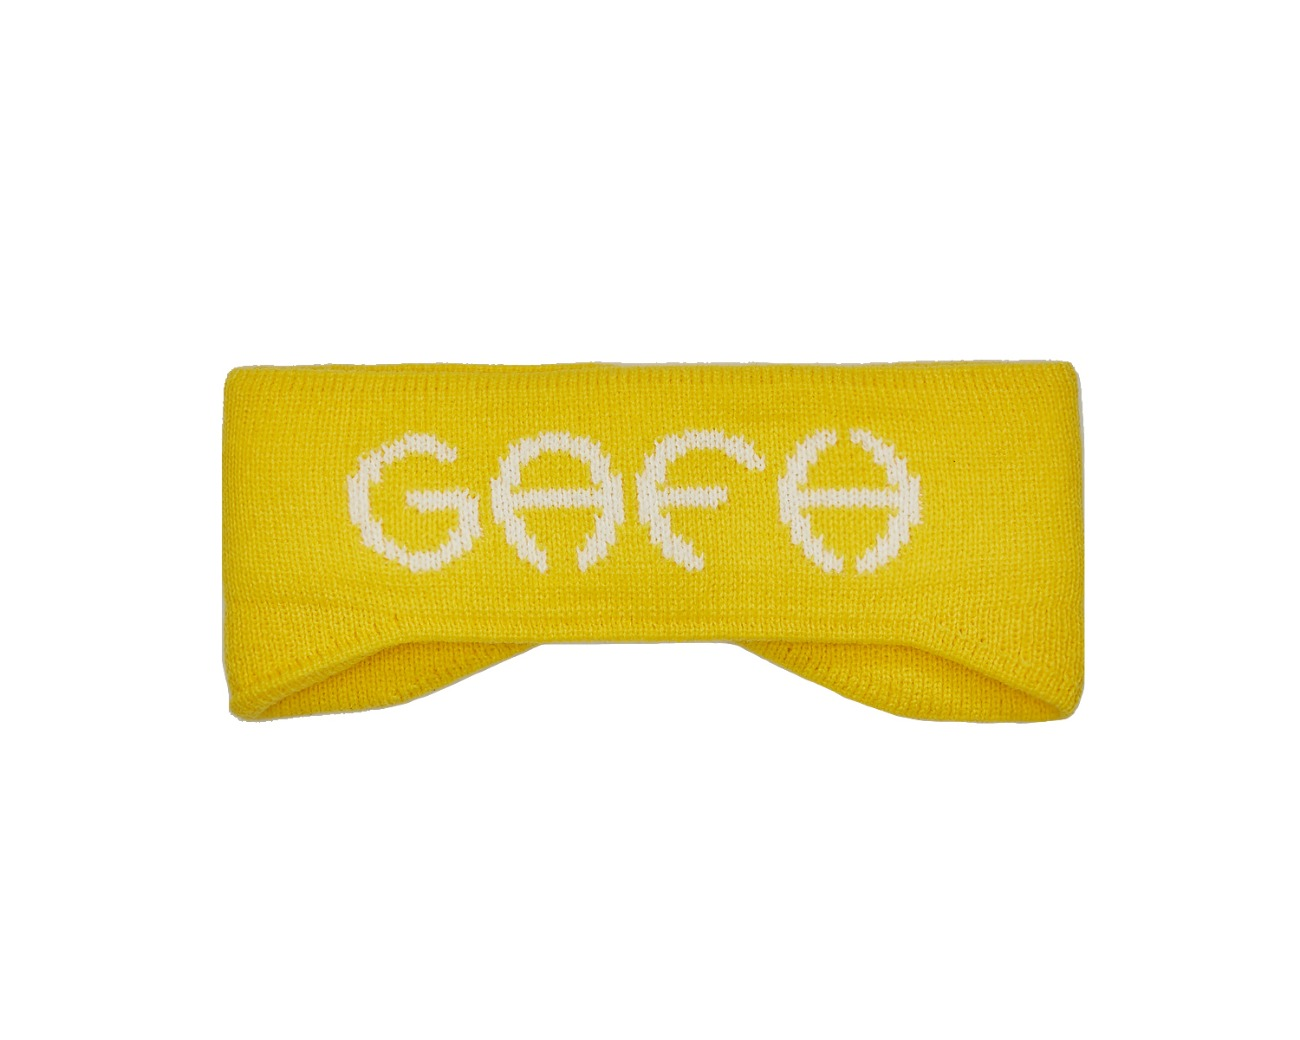 LOGO HEADBAND YELLOW / GAFH